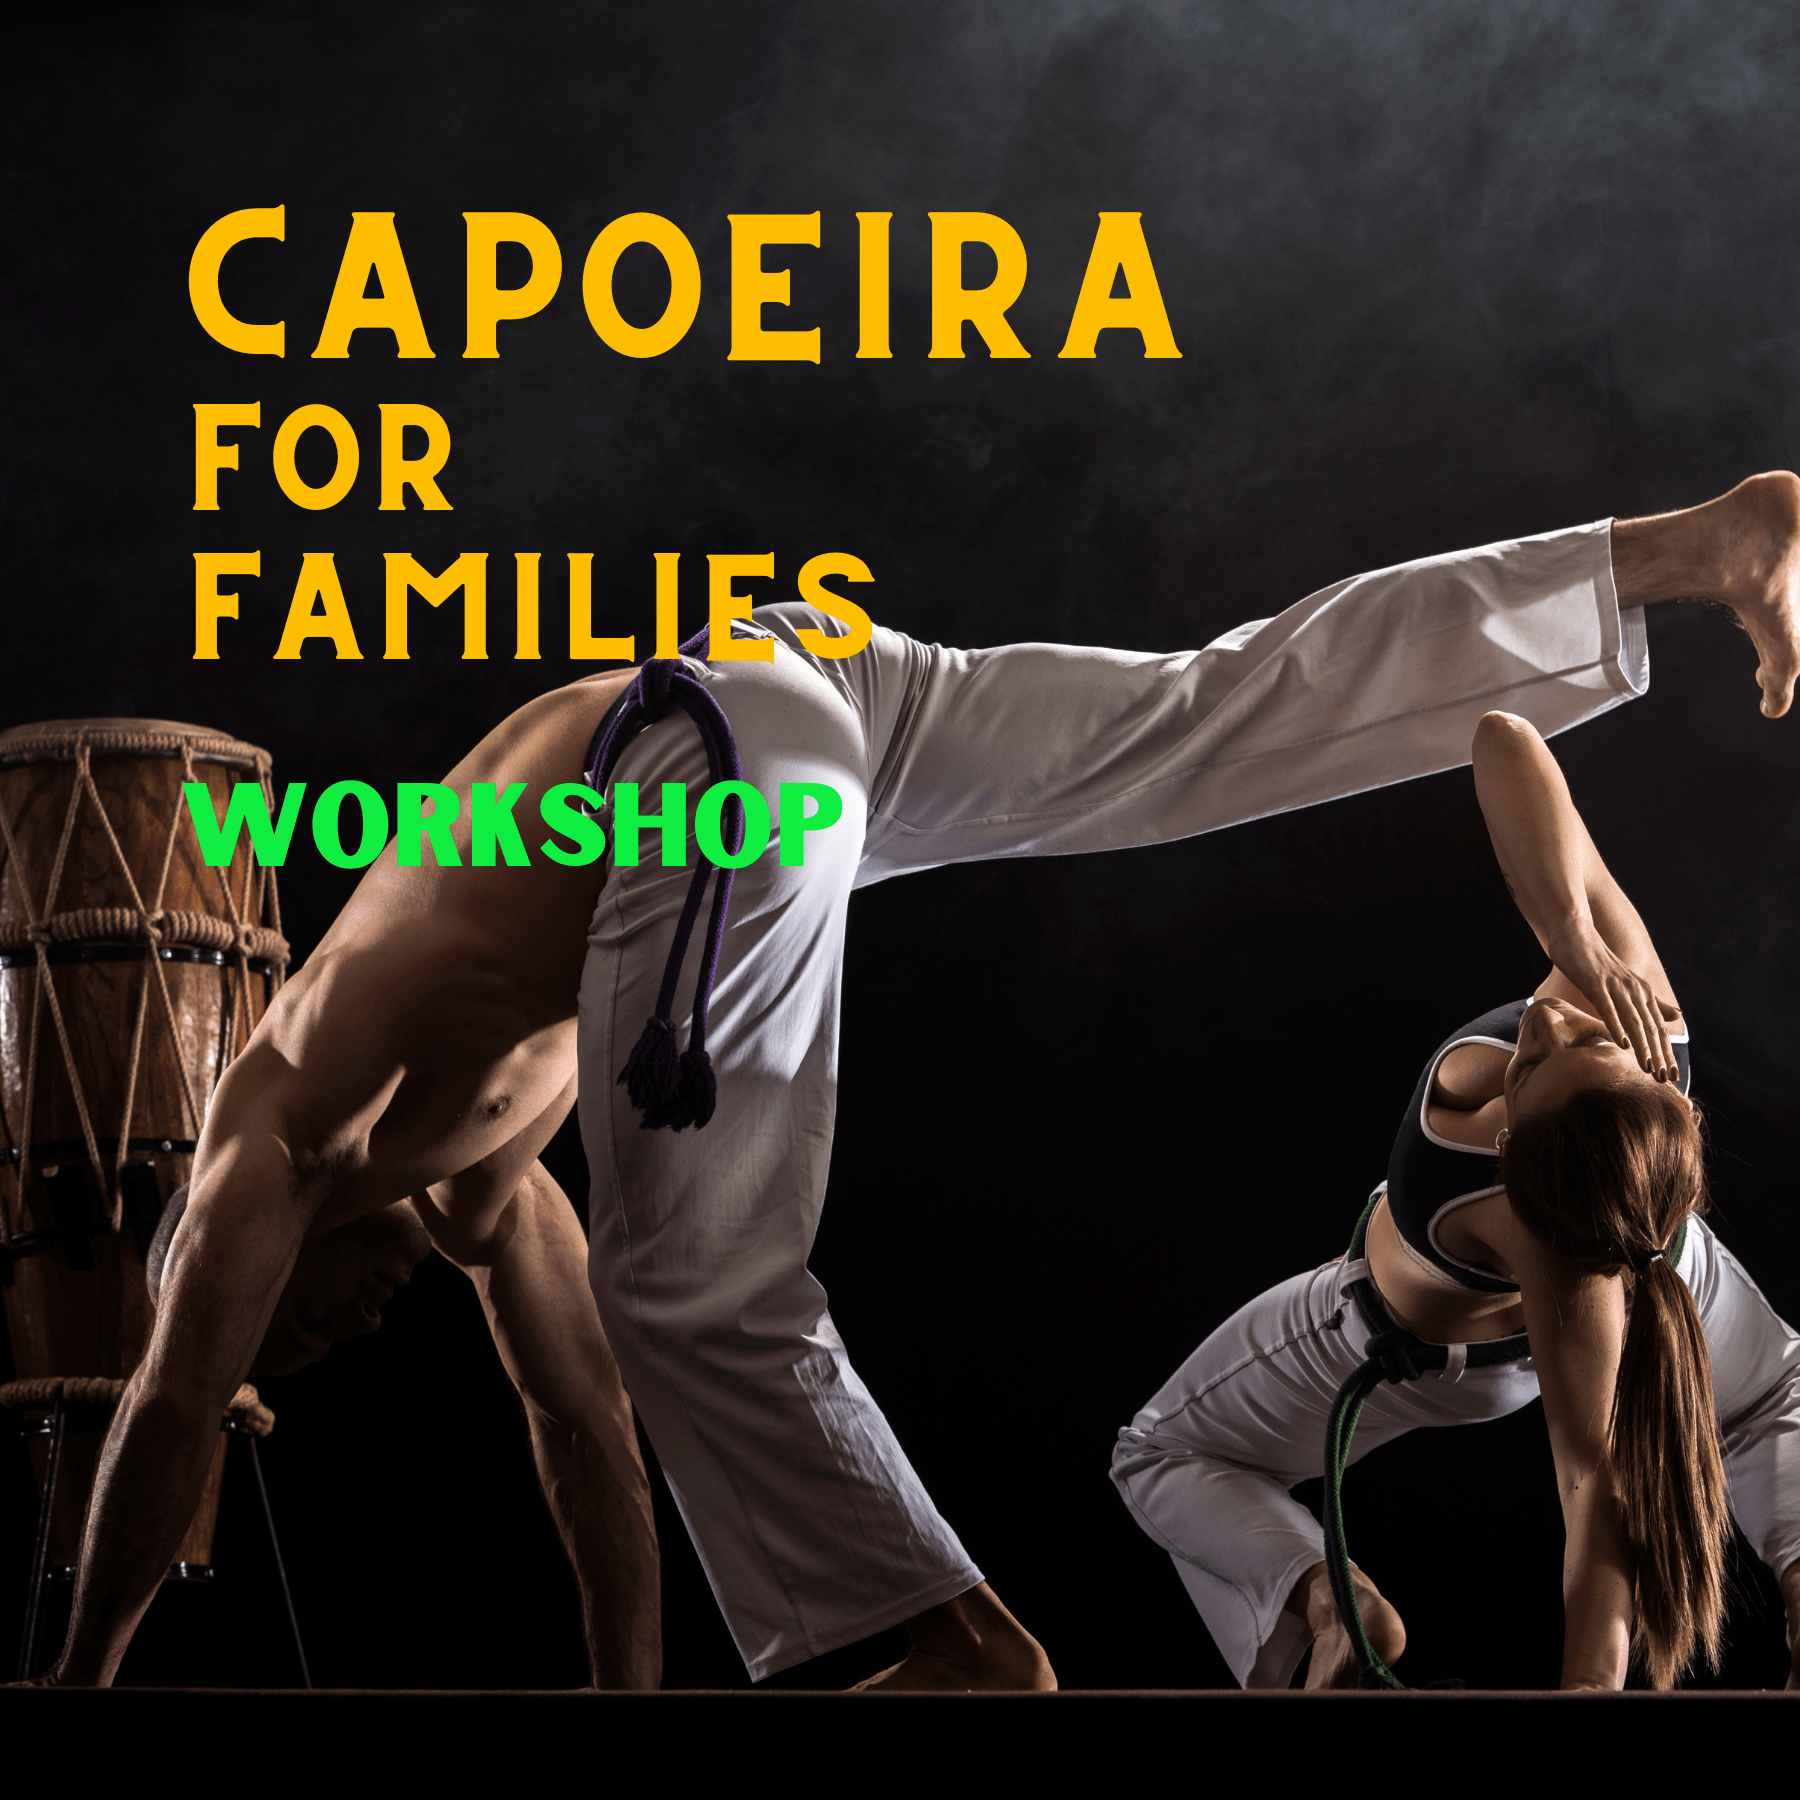 Capoeira For Families Workshop